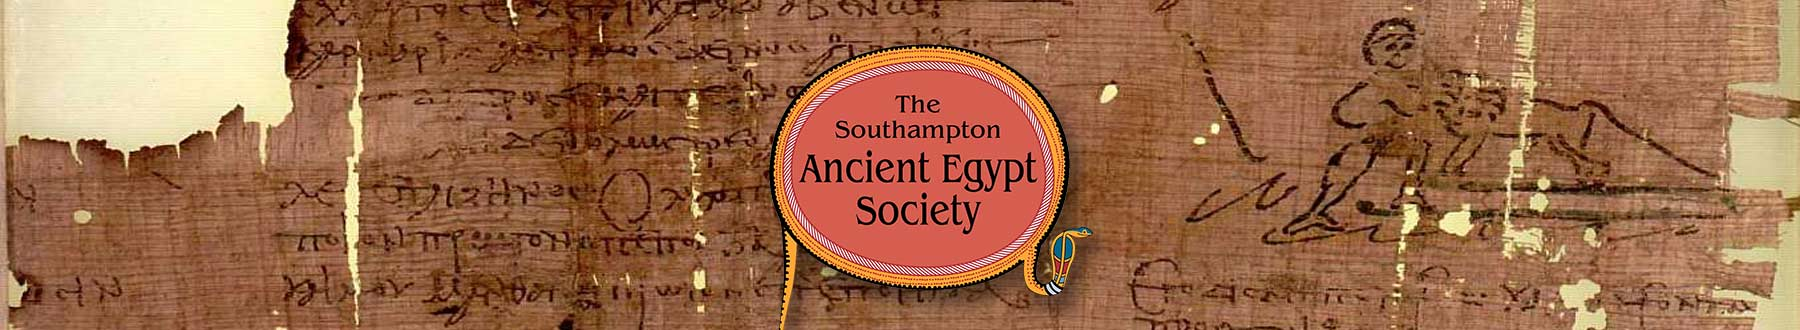 Southampton ancient egypt society